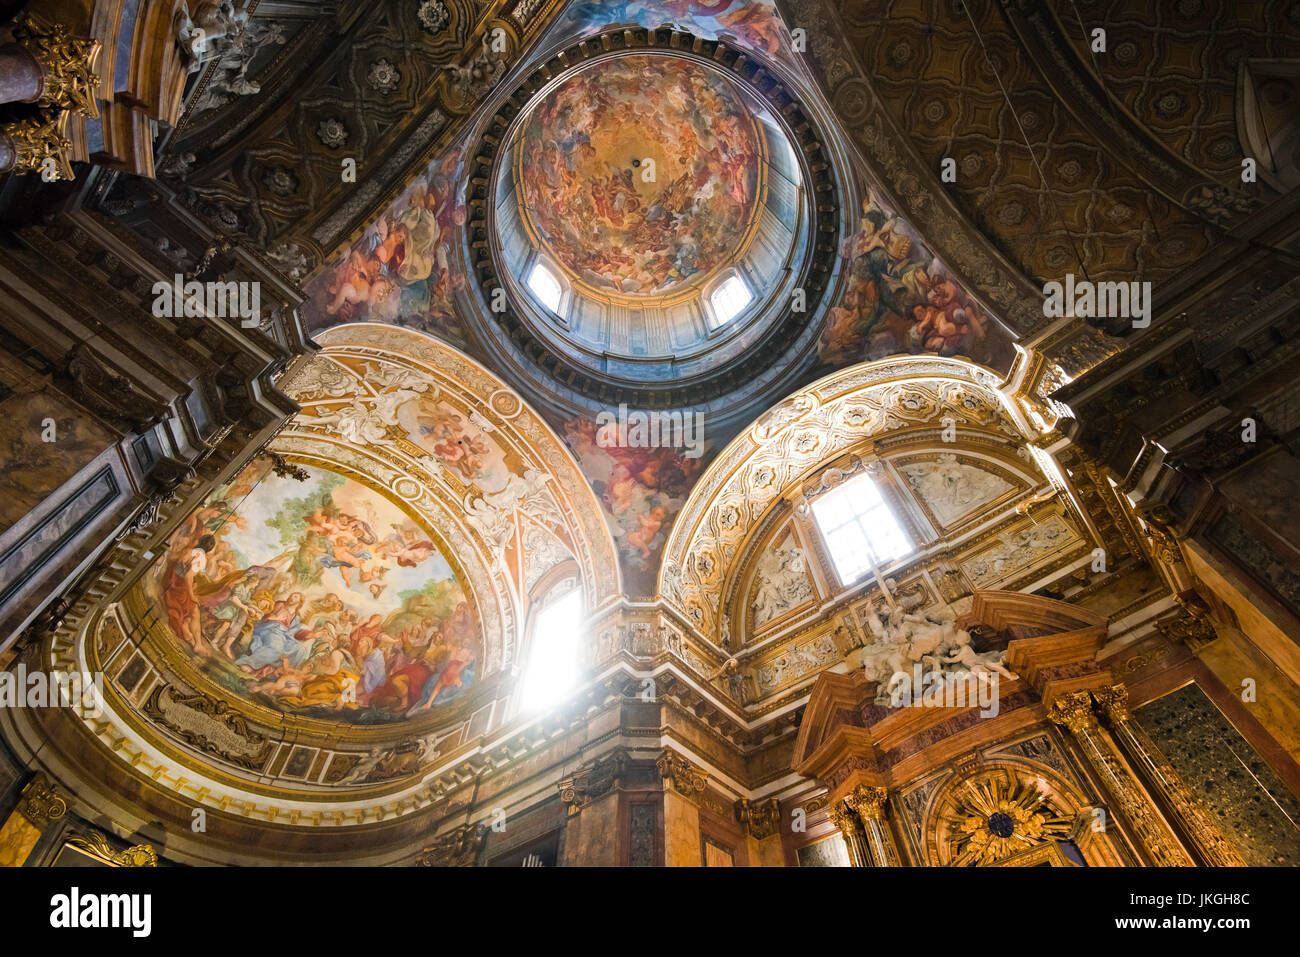 Horizontal view of the painted ceiling at Sant'Andrea dell Fratte church in Rome. - Stock Image